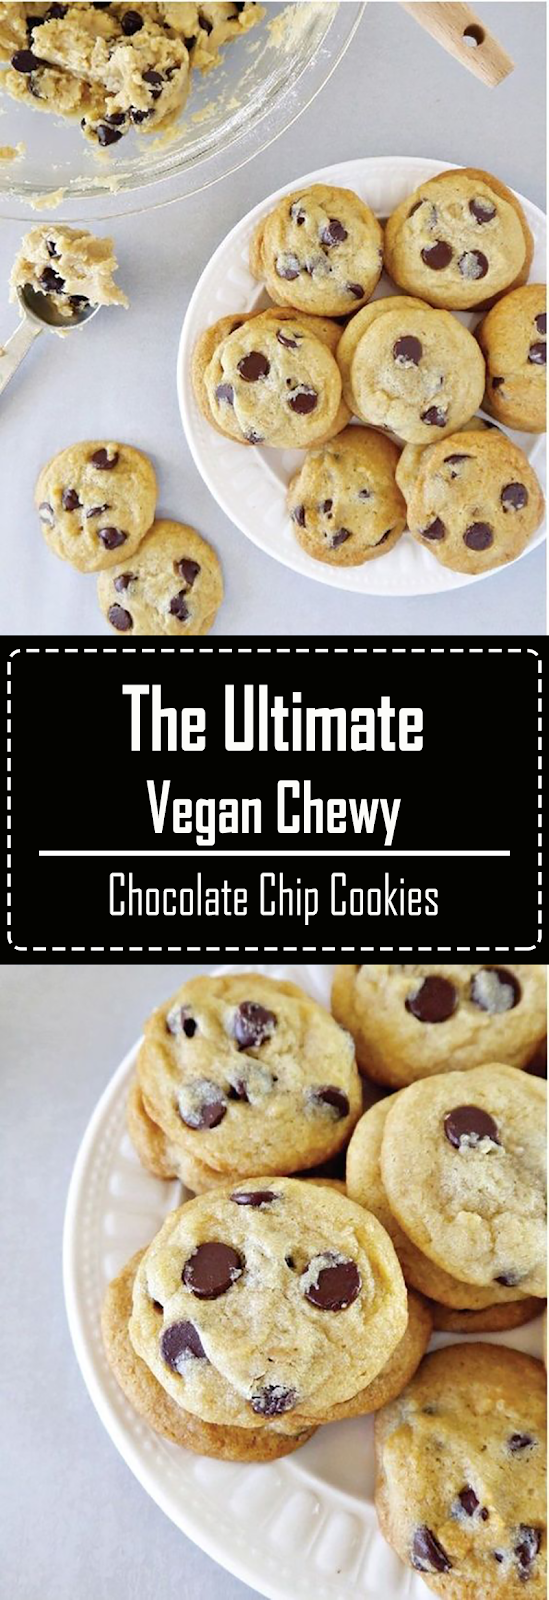 The Ultimate Vegan Chewy Chocolate Chip Cookies